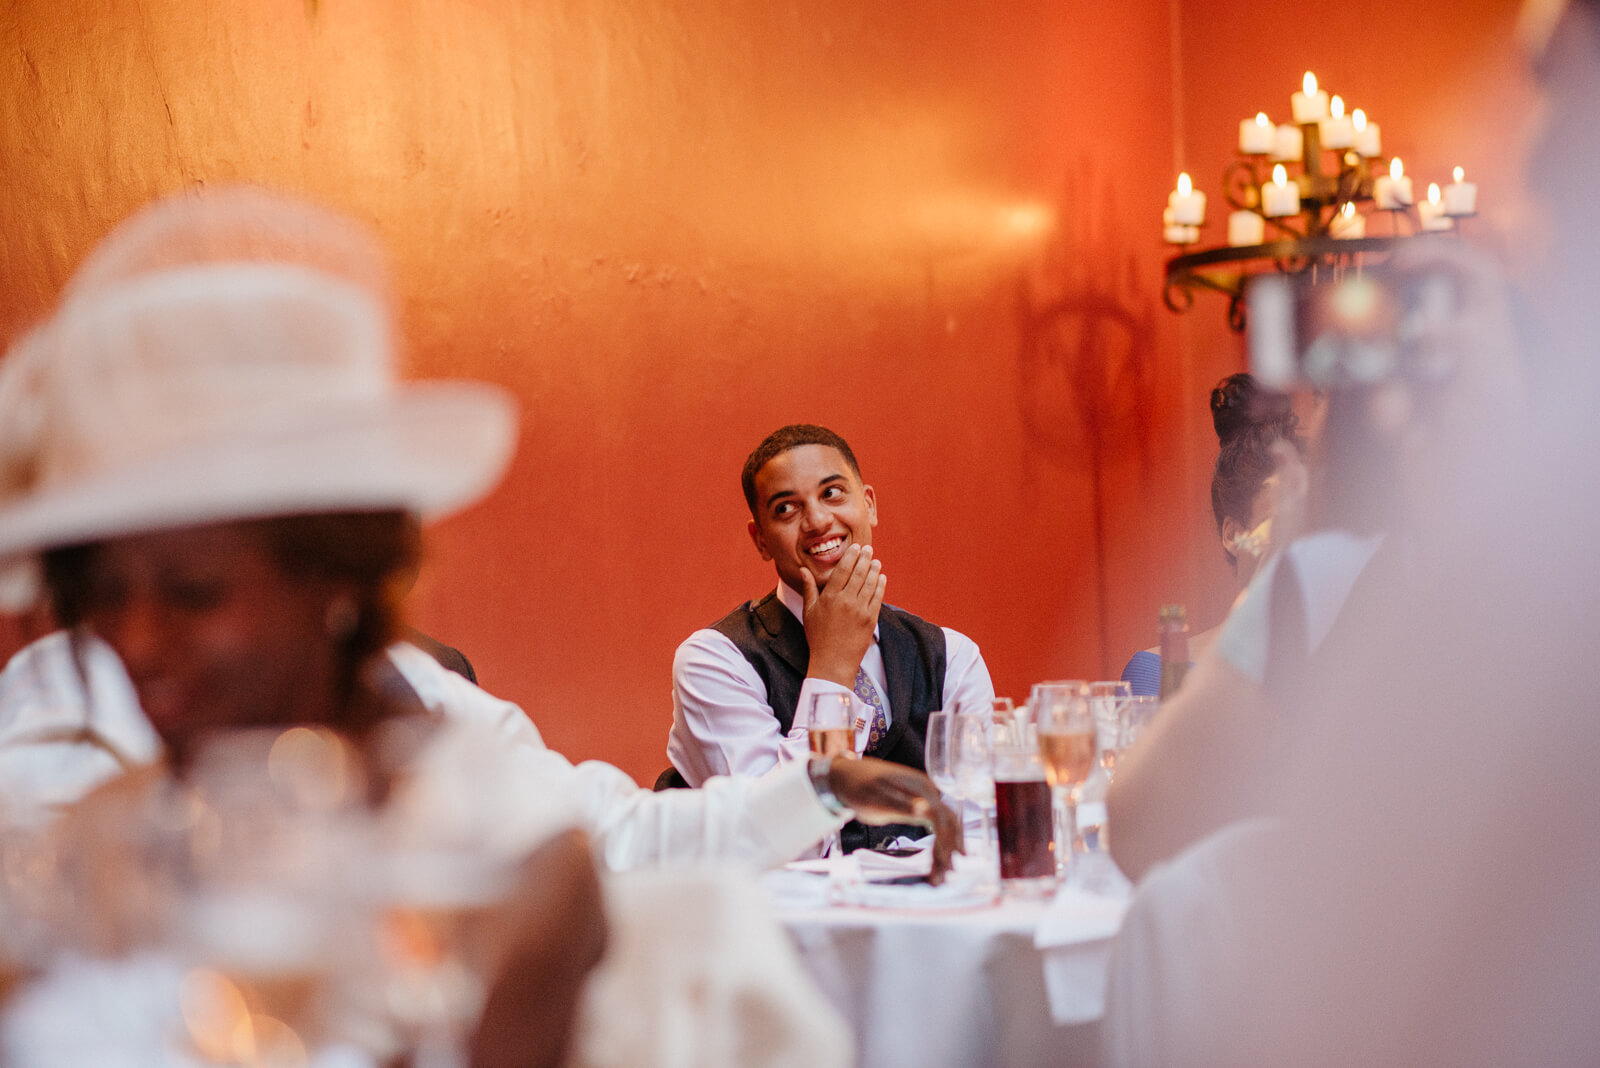 brides brother looks on smiling coyly while his sister delivers her speech during dinner